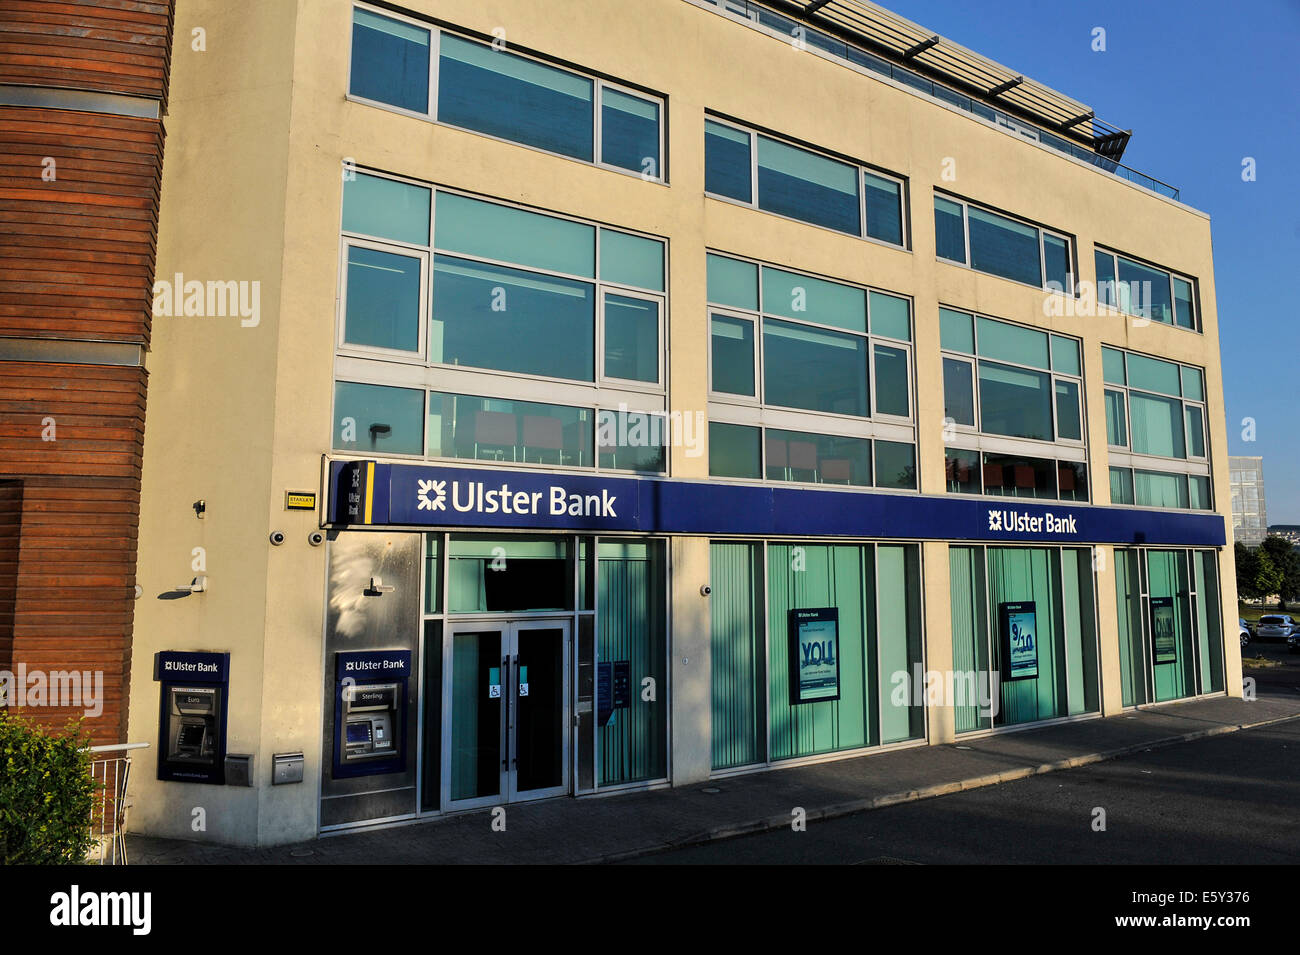 Exterior of Ulster Bank building, Derry, Londonderry, Northern Ireland - Stock Image